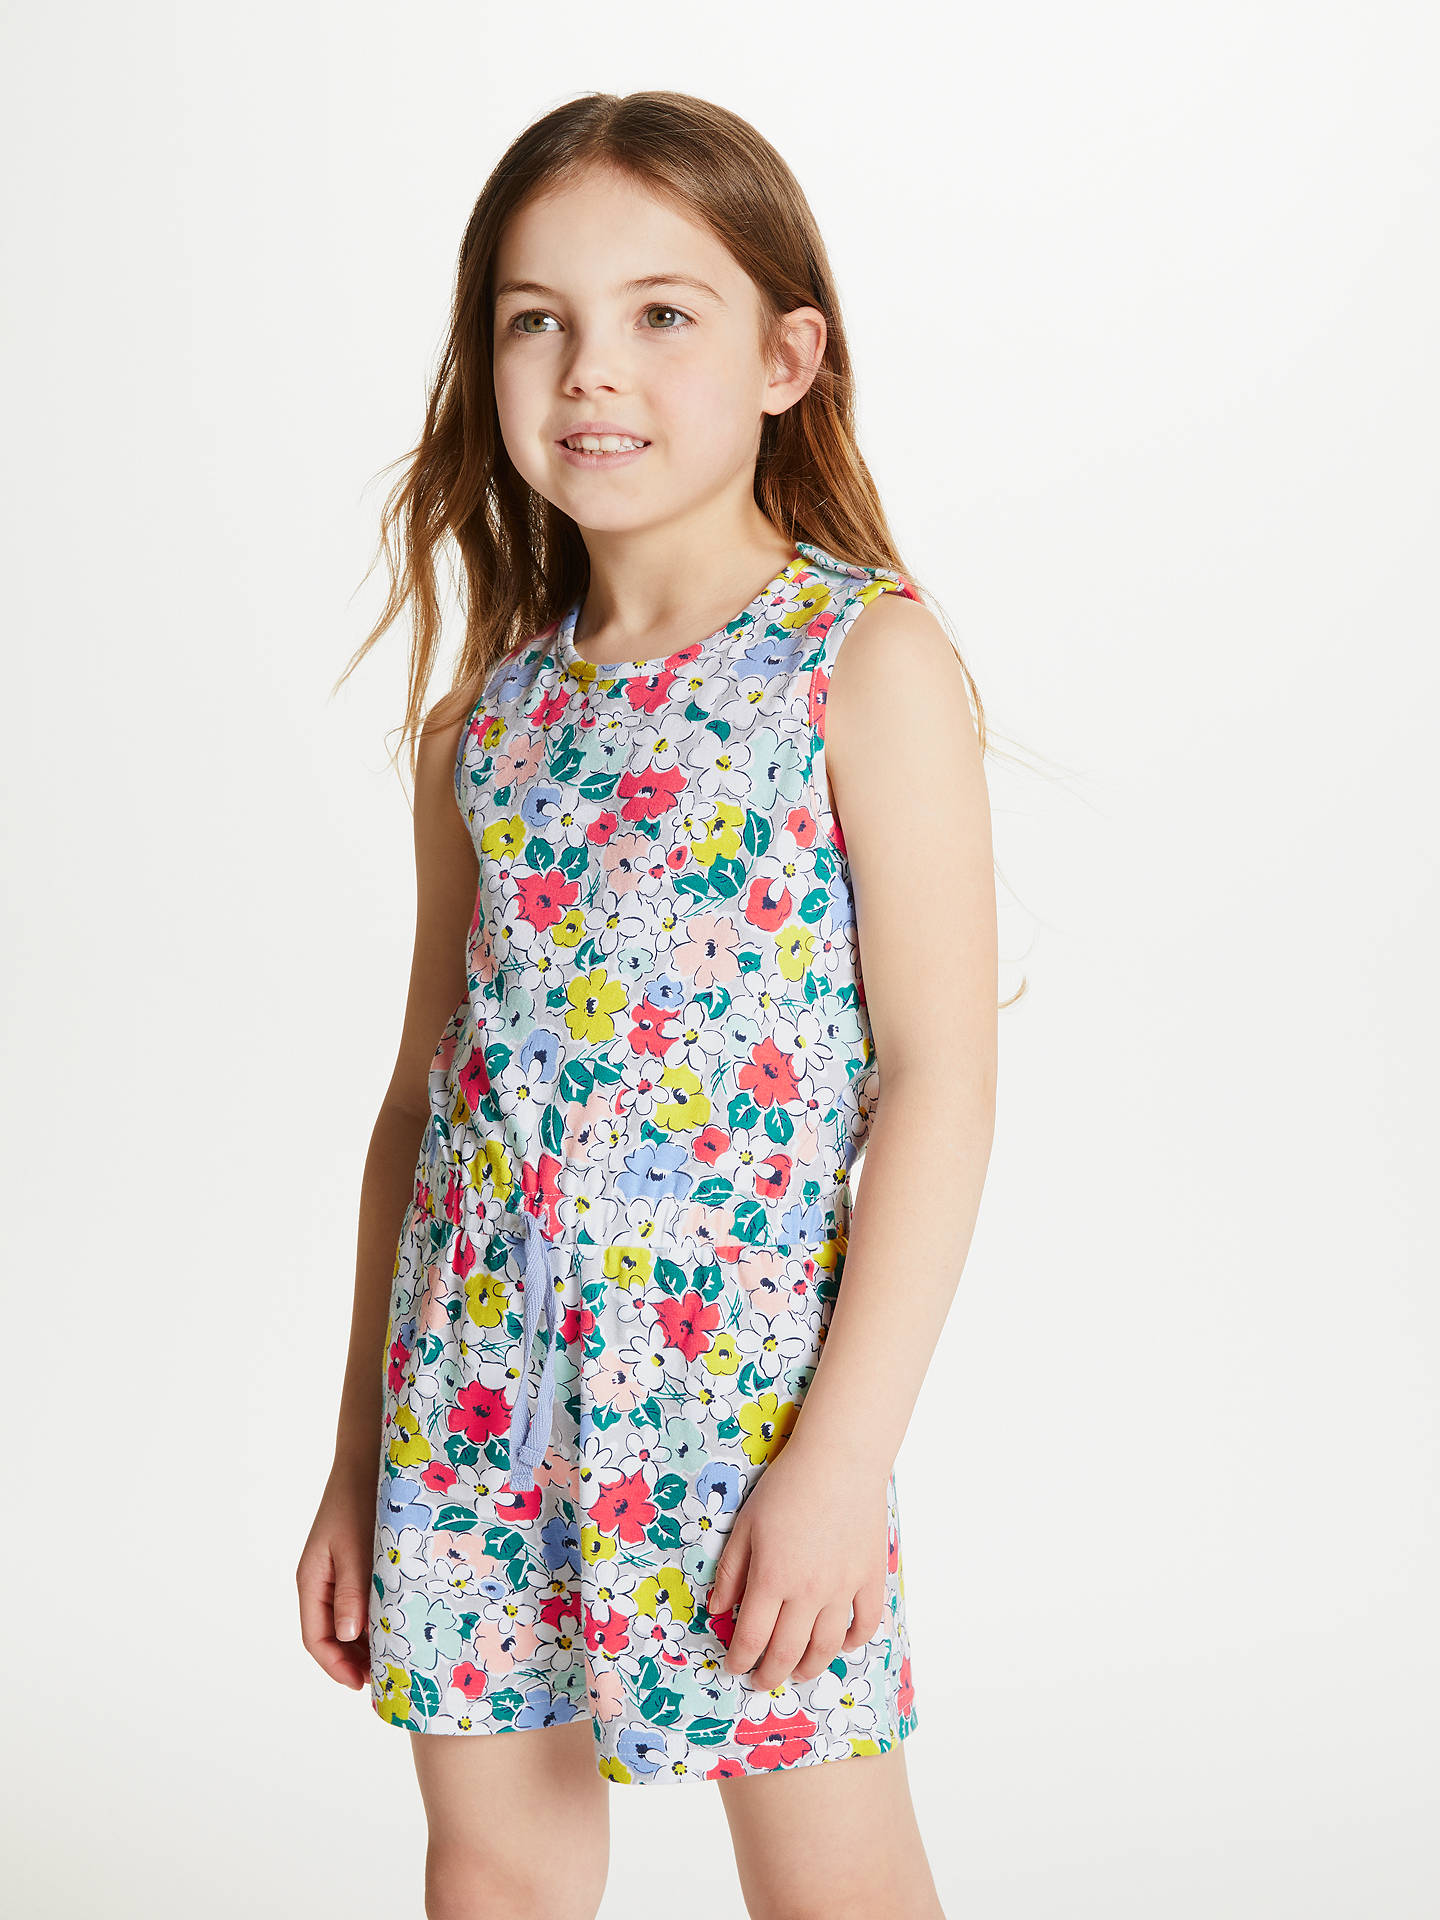 35a82aabe3 ... Buy John Lewis   Partners Girls  Floral Print Playsuit